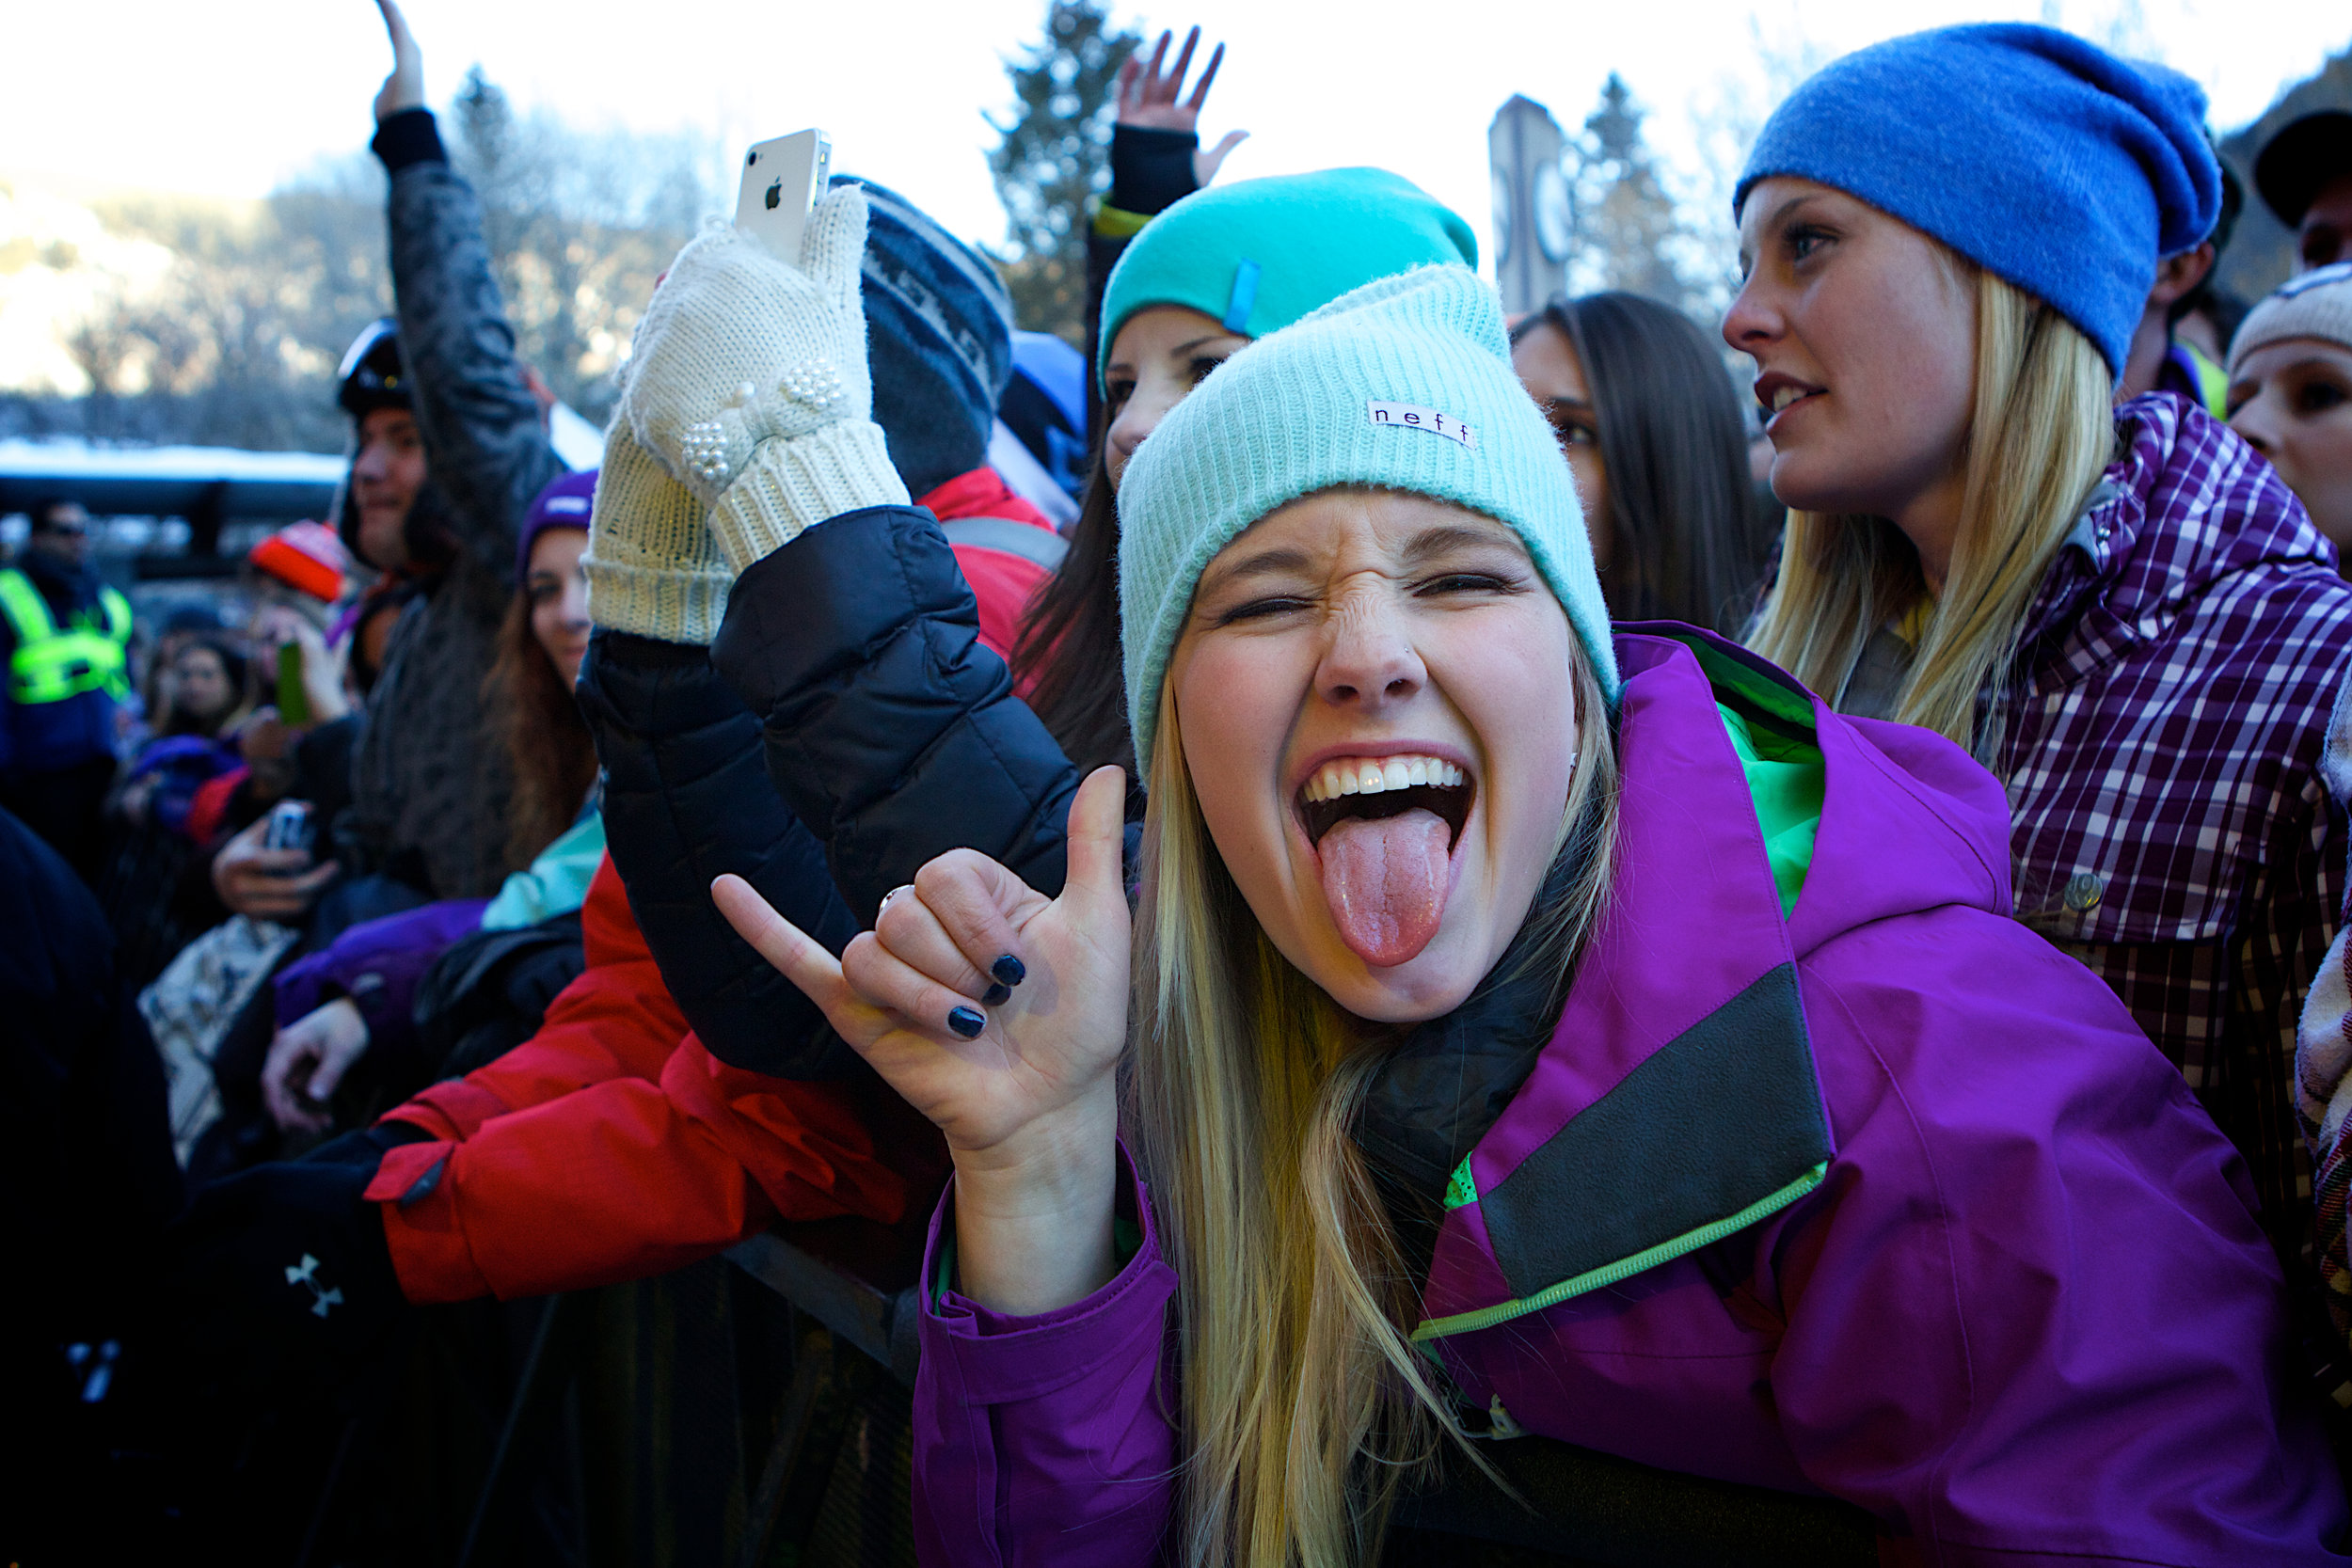 Jubilant fans enjoy some of the sights and sounds during X Games in Aspen, Colorado